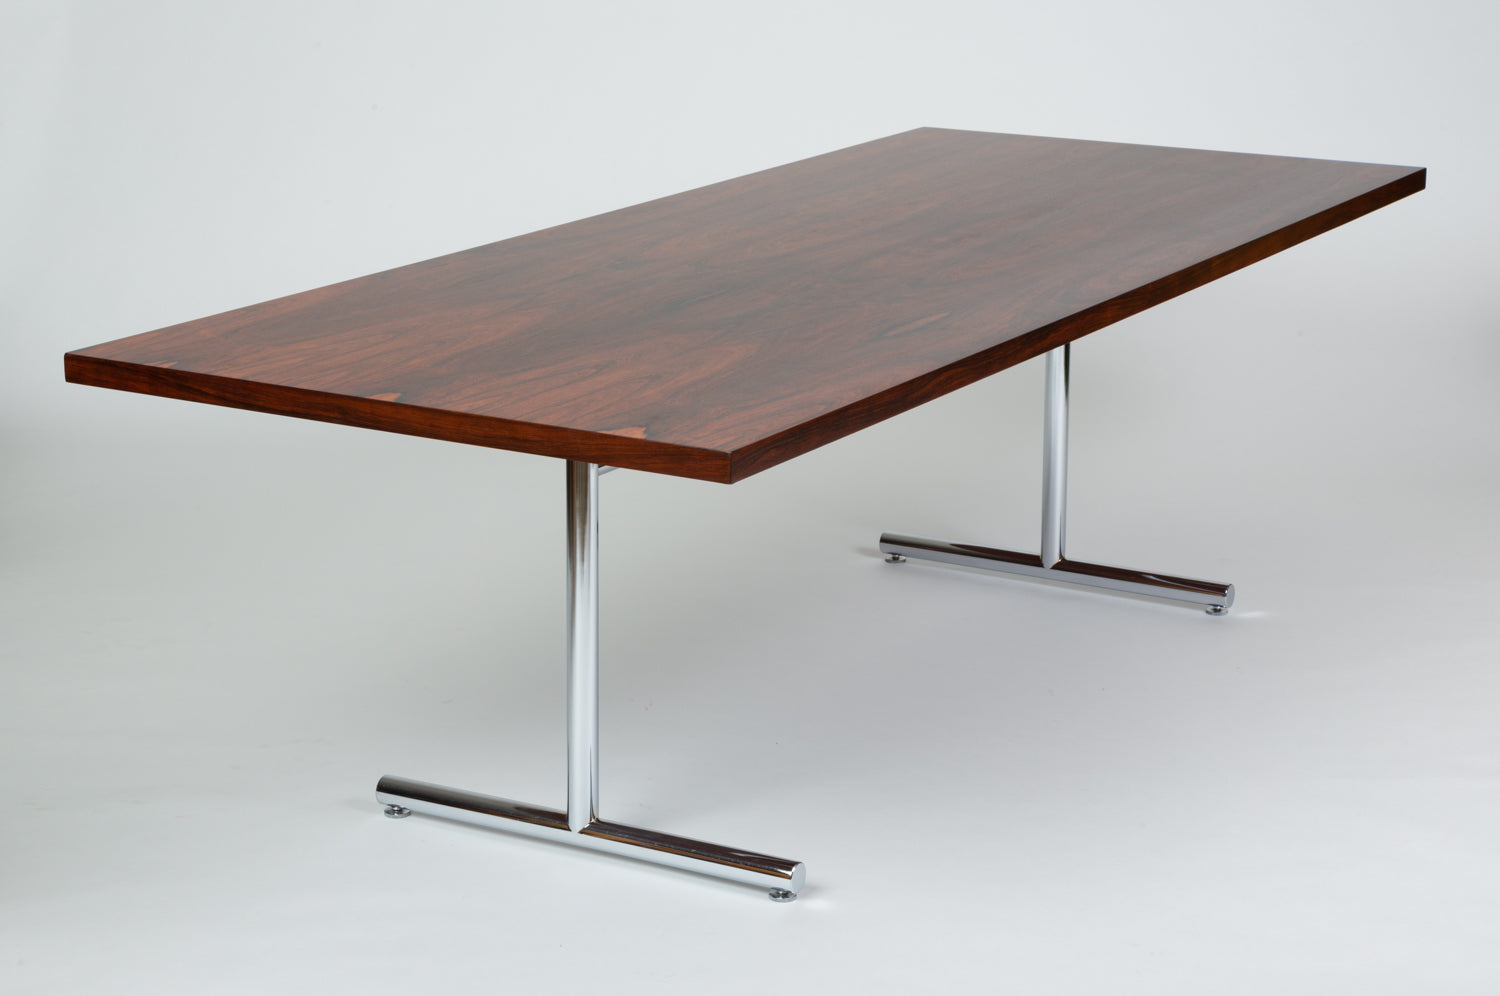 Rosewood Omega Desk-Dining Table by Hans Eichenberger for Hausmann + Hausmann